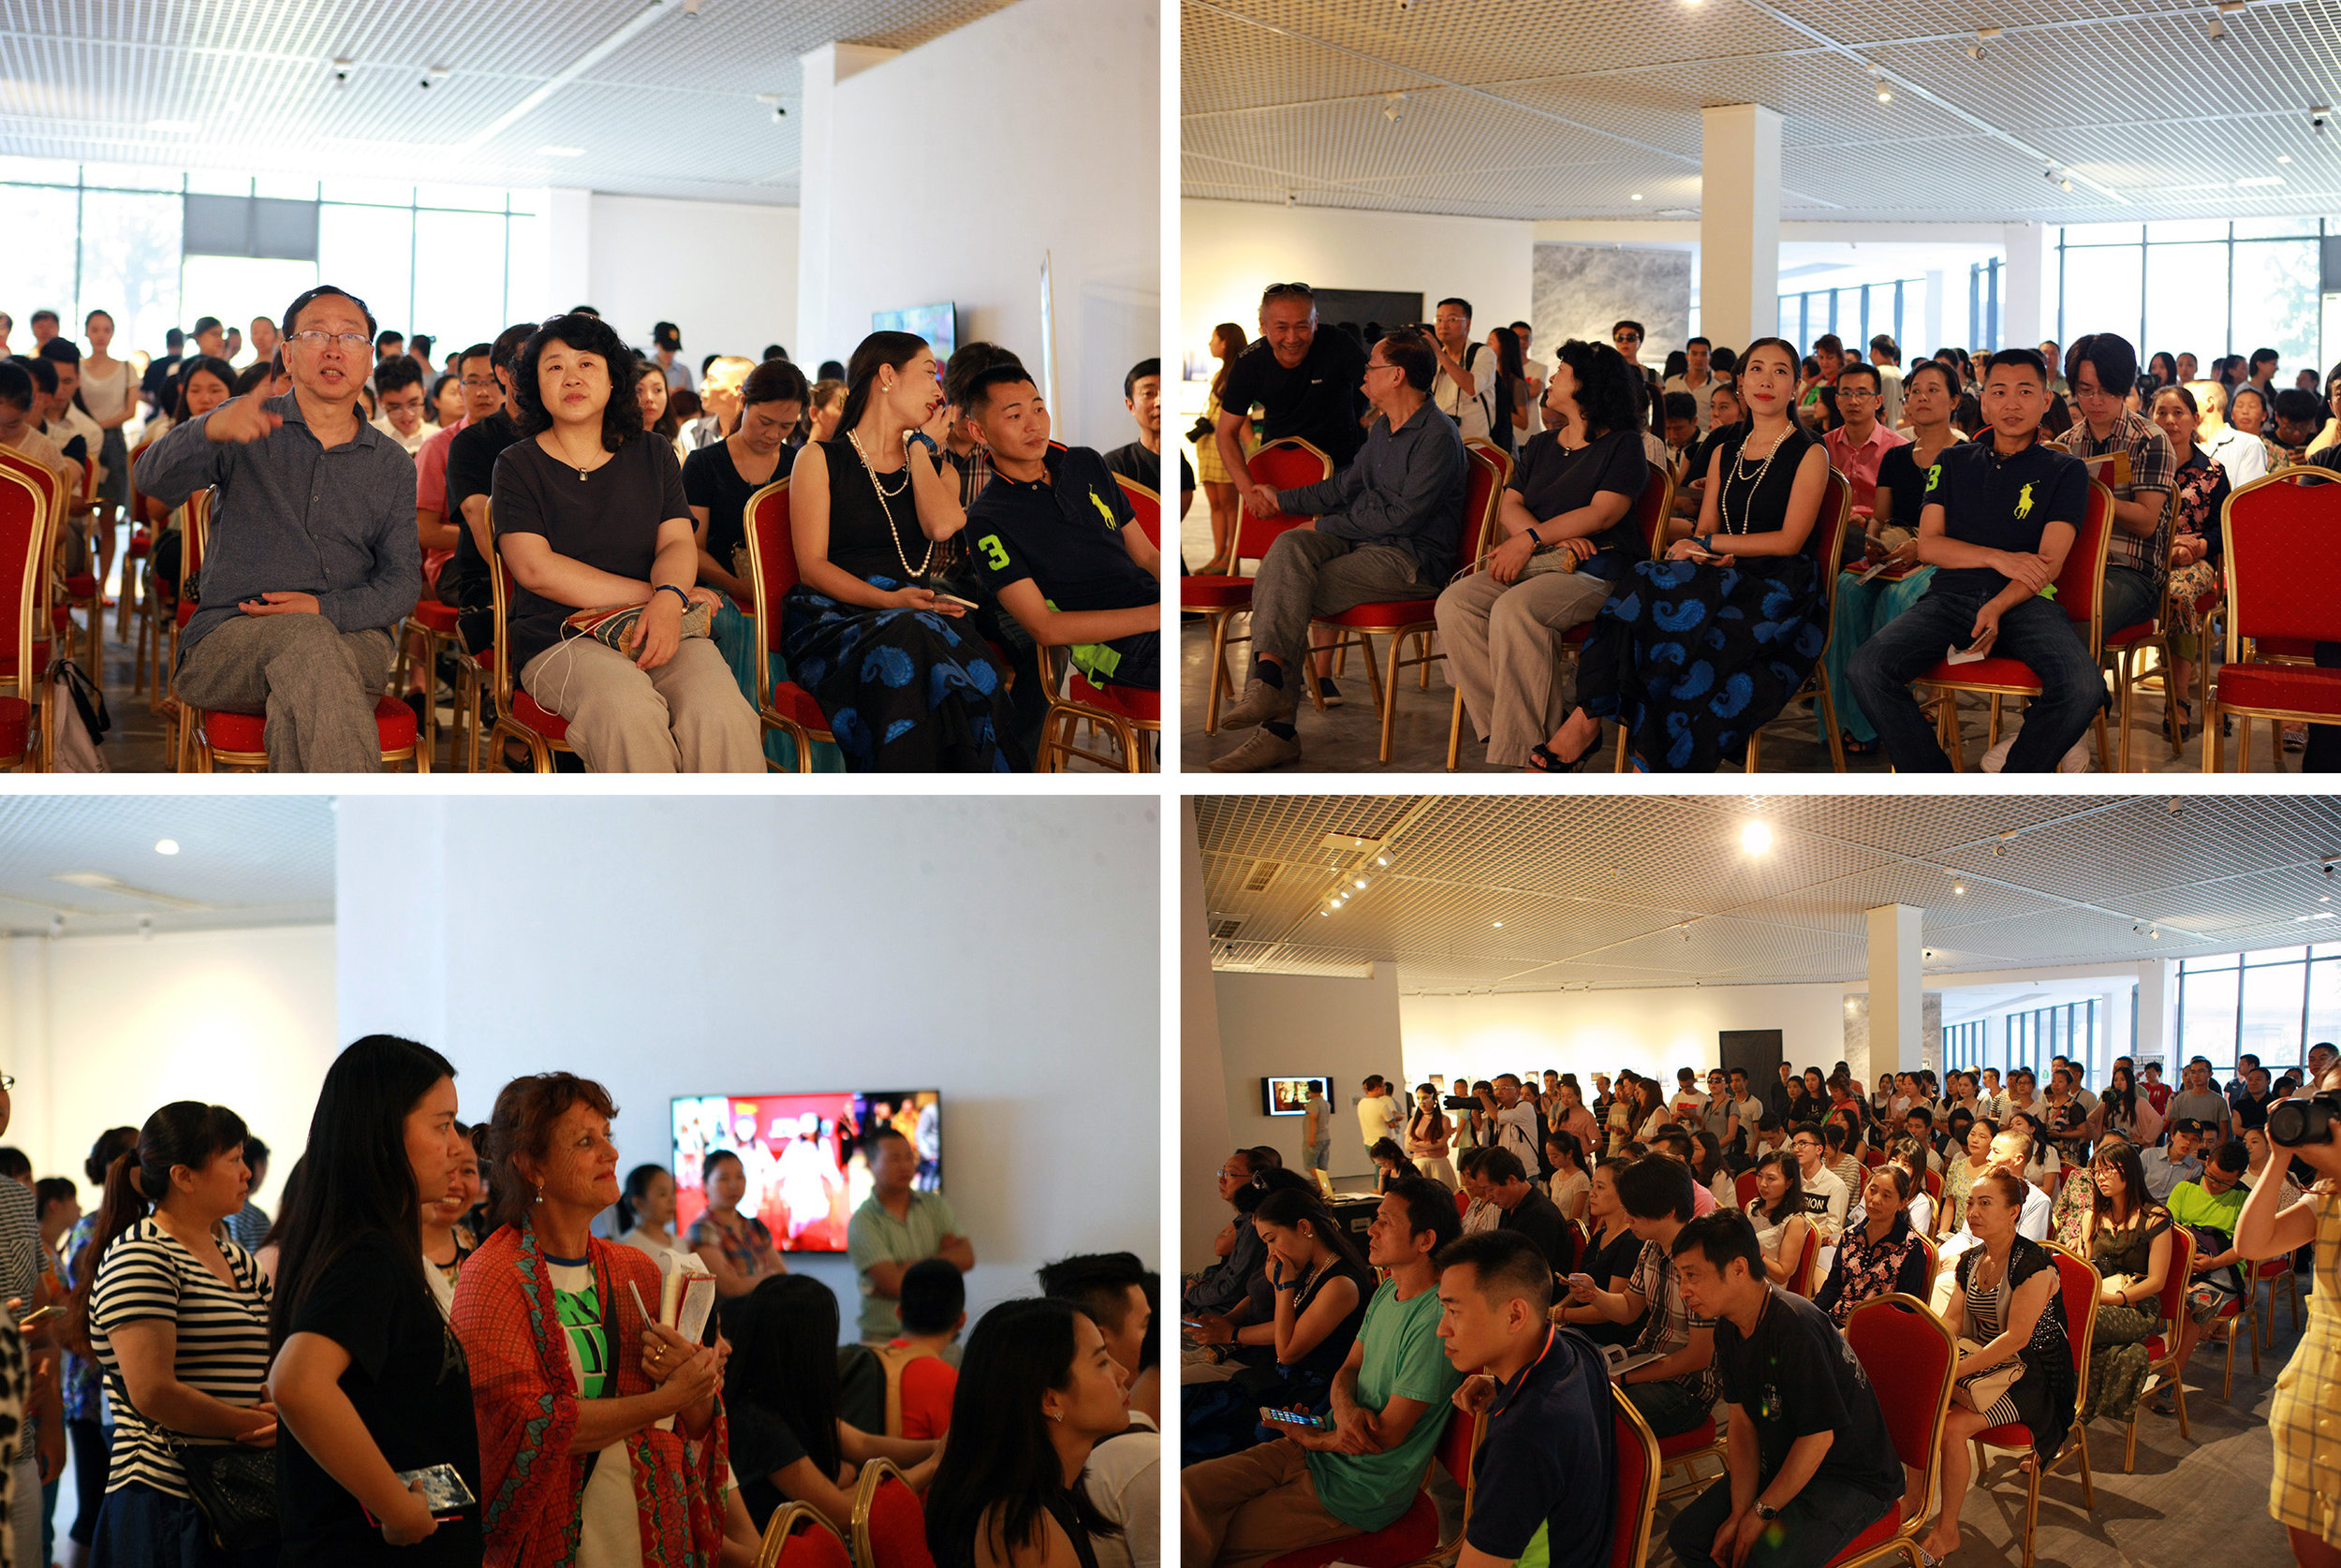 """On June 12, Tan Tan organized an """"award ceremony"""" of """"Chongqing Stop. In addition to hundreds of spectators, many famous people in the art circle attended the ceremony, such as art critic Wang Lin, artist Li Zhanyang, and the director of Chongqing Changjiang Contemporary Art Museum. The space is fulfilled with enthusiastic crowd..."""